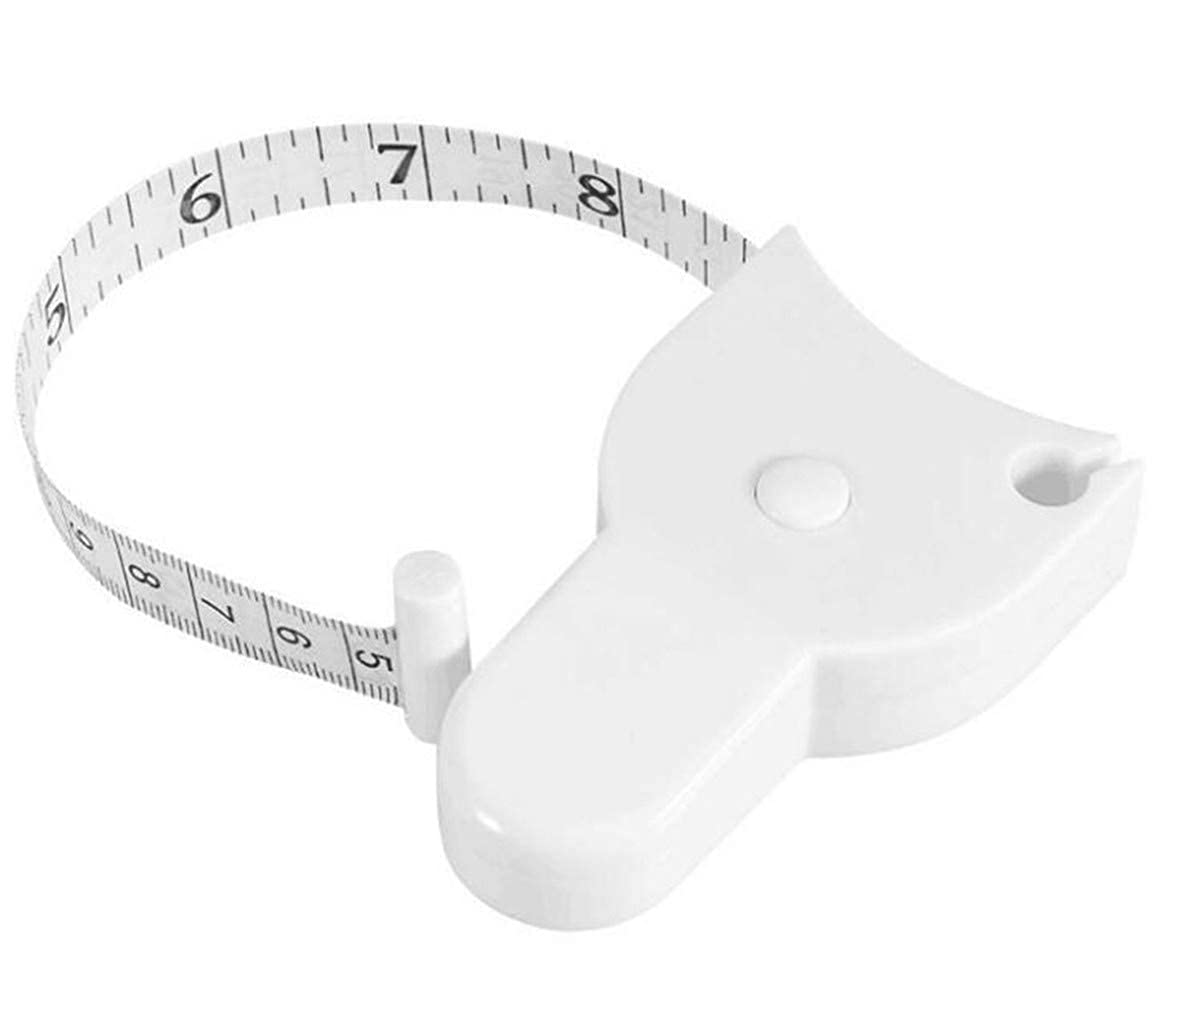 DFVVR Tape Measure ❤ Wintape Waist Body Tape Measure with Push Button Measuring Waist and Arms Pink